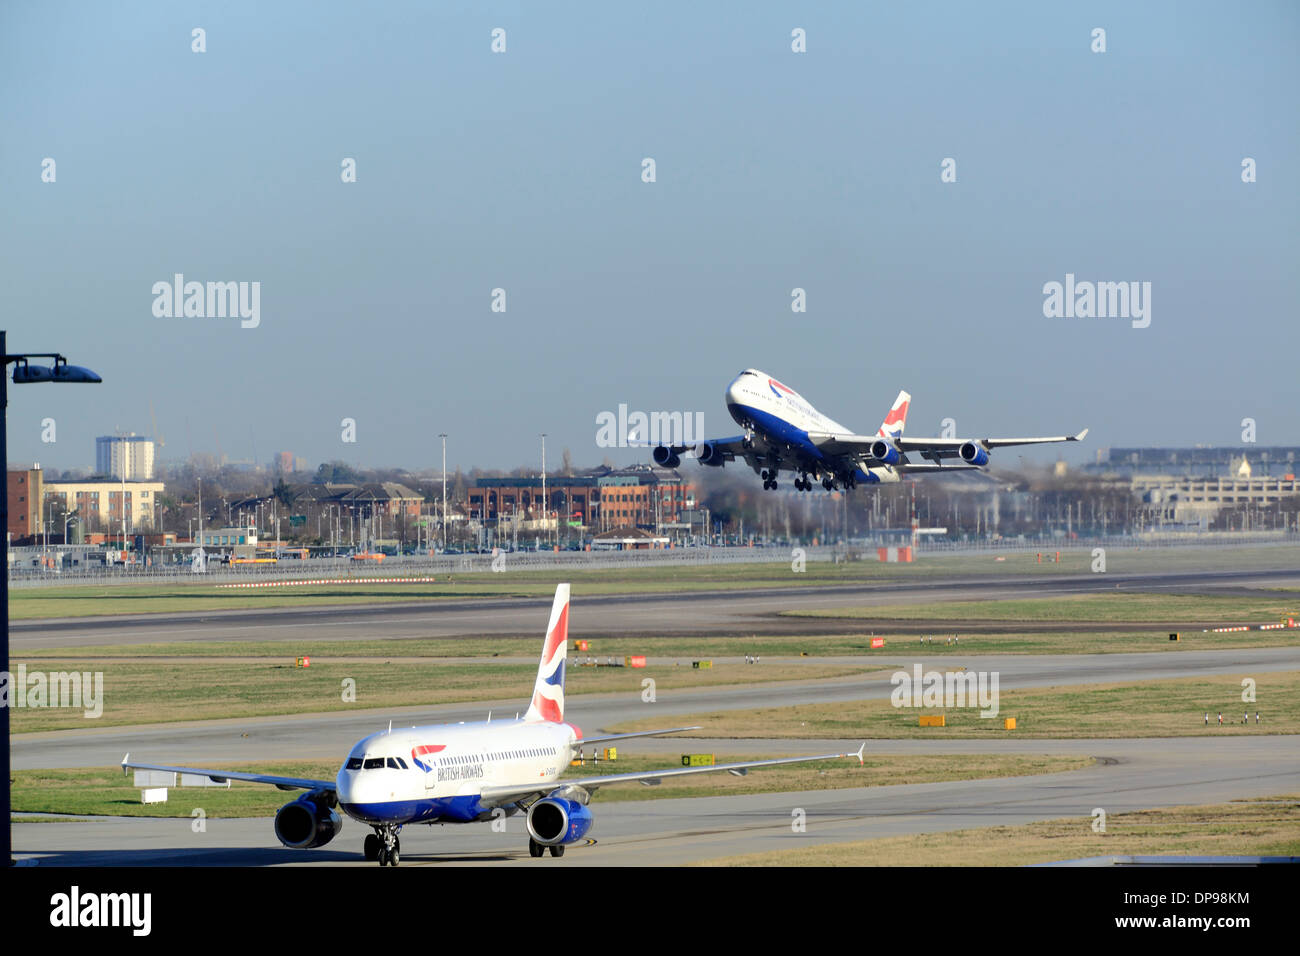 British Airways Boeing 747 takes off at Heathrow Airport runway 27R - Stock Image